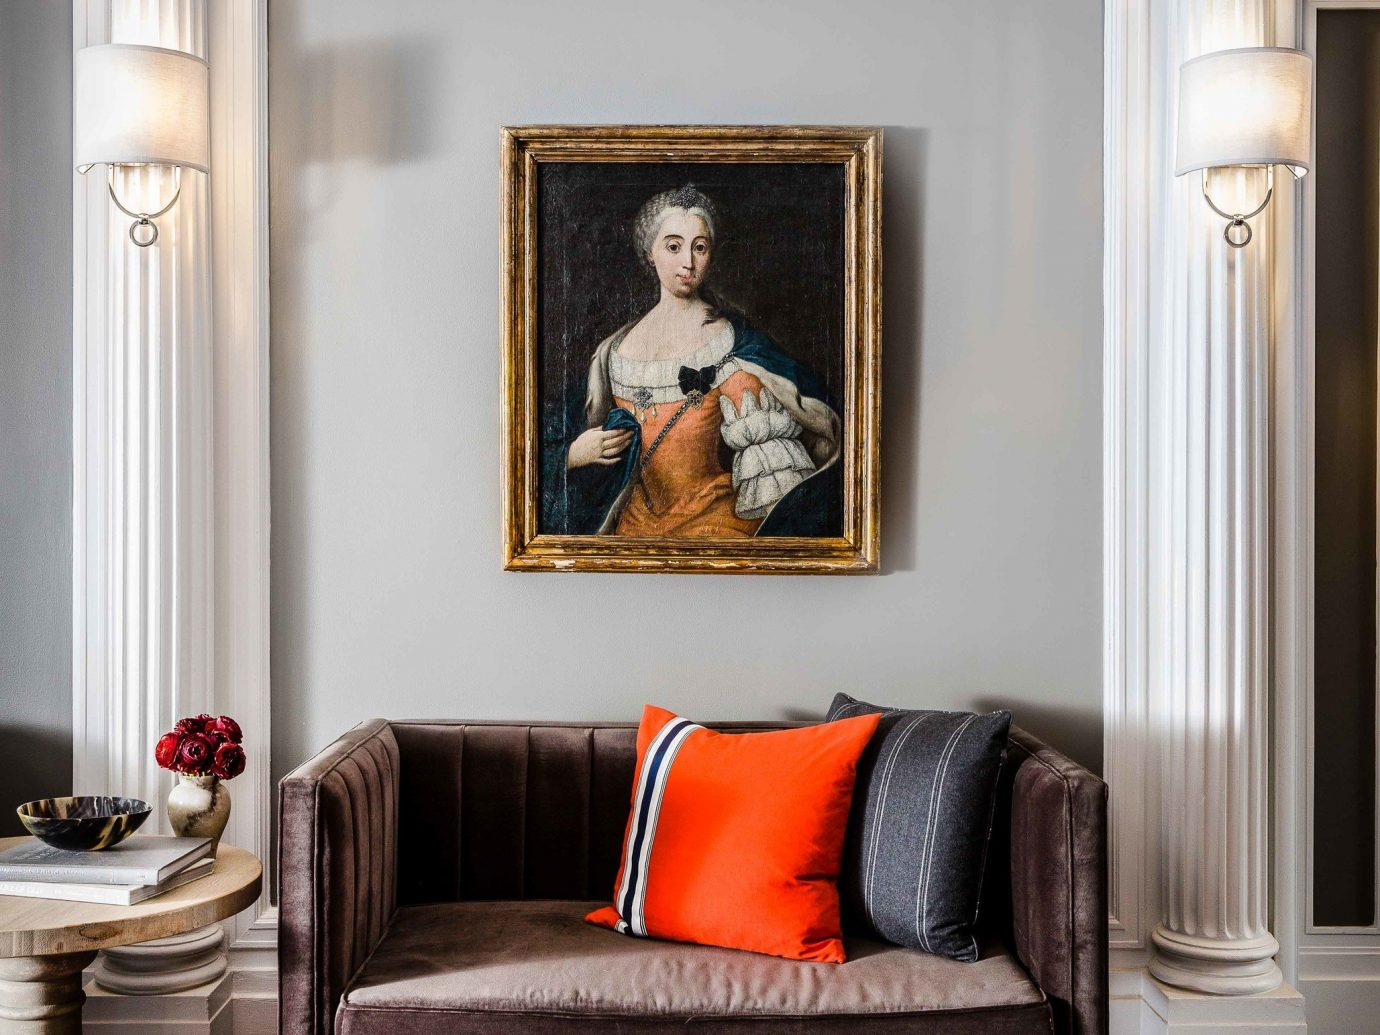 Boutique Hotels Hotels Influencers + Tastemakers Romantic Hotels Style + Design indoor floor room wall Living living room furniture interior design home couch ceiling table chair window decor orange decorated